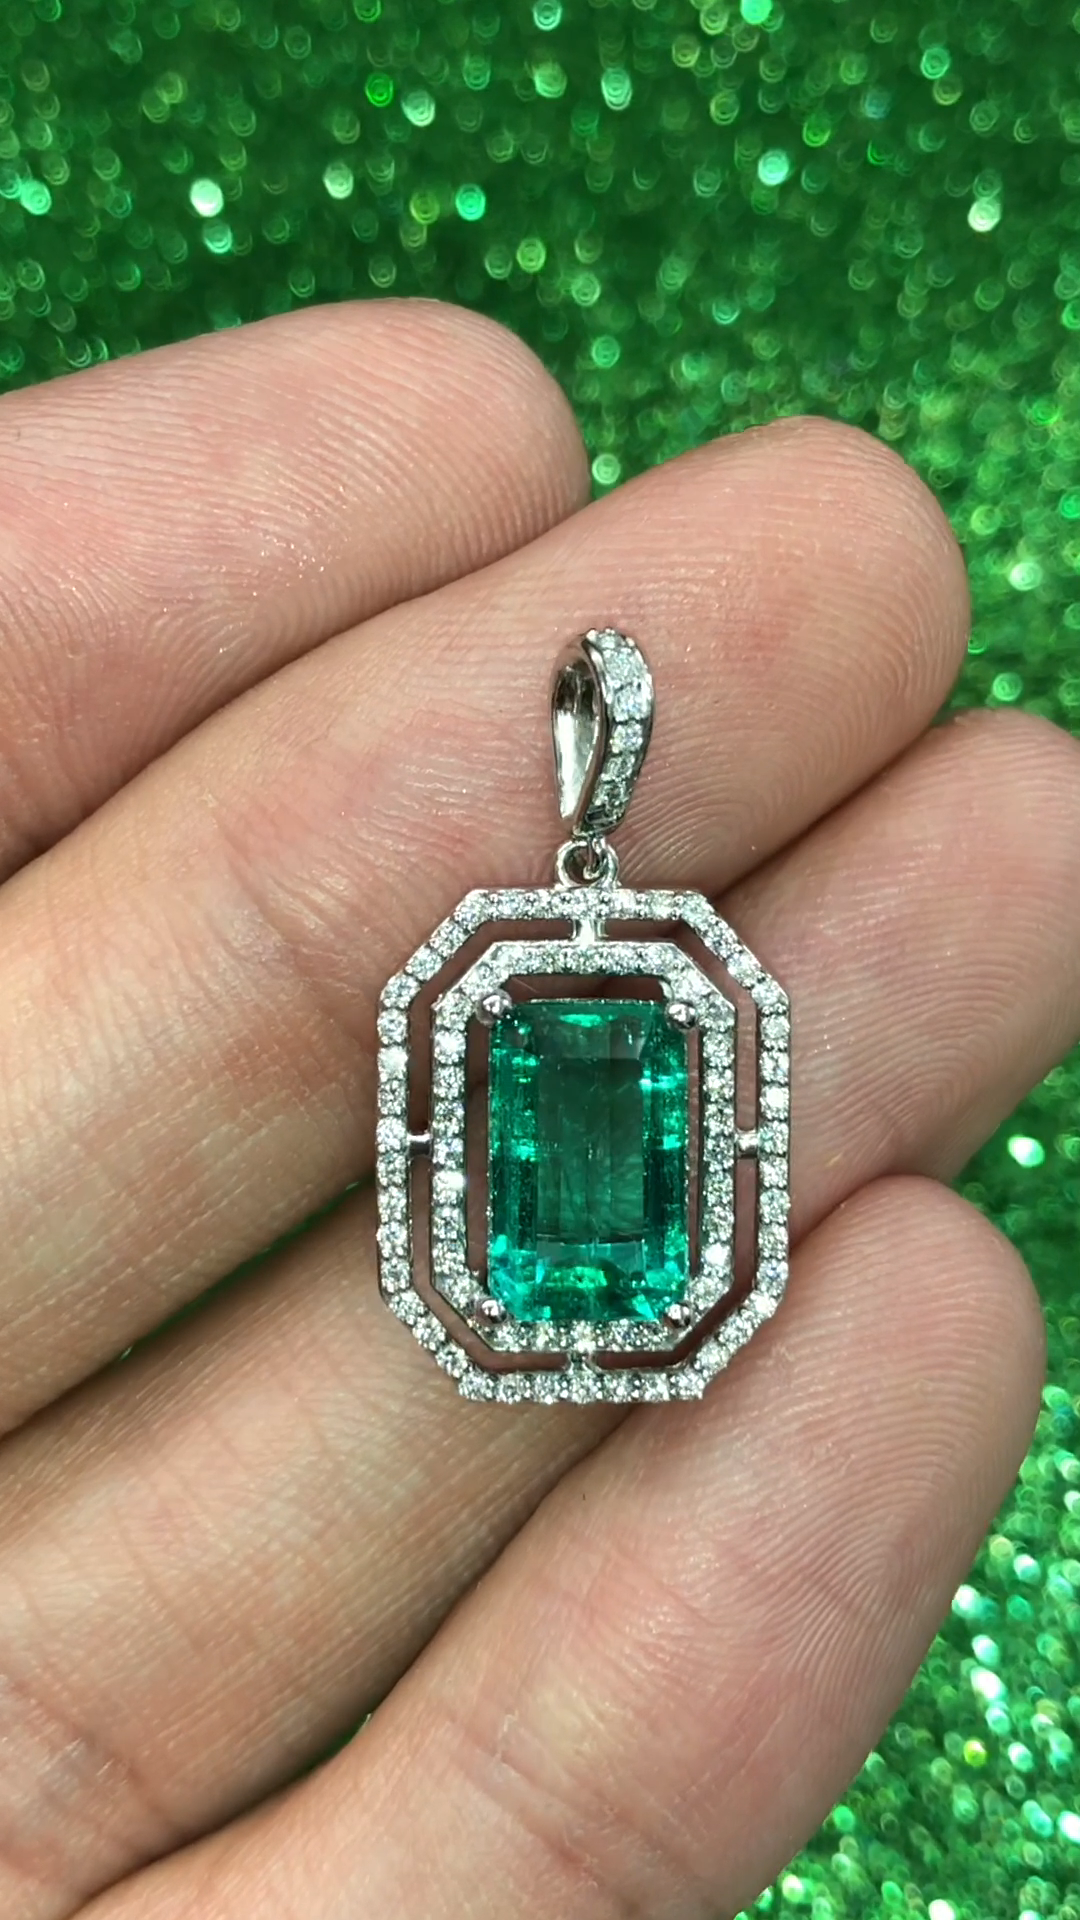 A stunning, vivid, rich green emerald and VS diamond pendant hand set in platinum. This was a customized setting for our elongated 2.69ct Colombian emerald that was selected loose. Simple and elegant, an ideal anniversary piece for my special client 😍 #emerald #emeralds #emeraldcut #emeraldcutdiamond #emeraldcutengagementring #emeraldcutnecklace #colombianemerald #colombianemeralds #looseemerald #loosegemstone #emeraldpendant #emeraldnecklace #halopendant #halonecklace #engagementjewelry